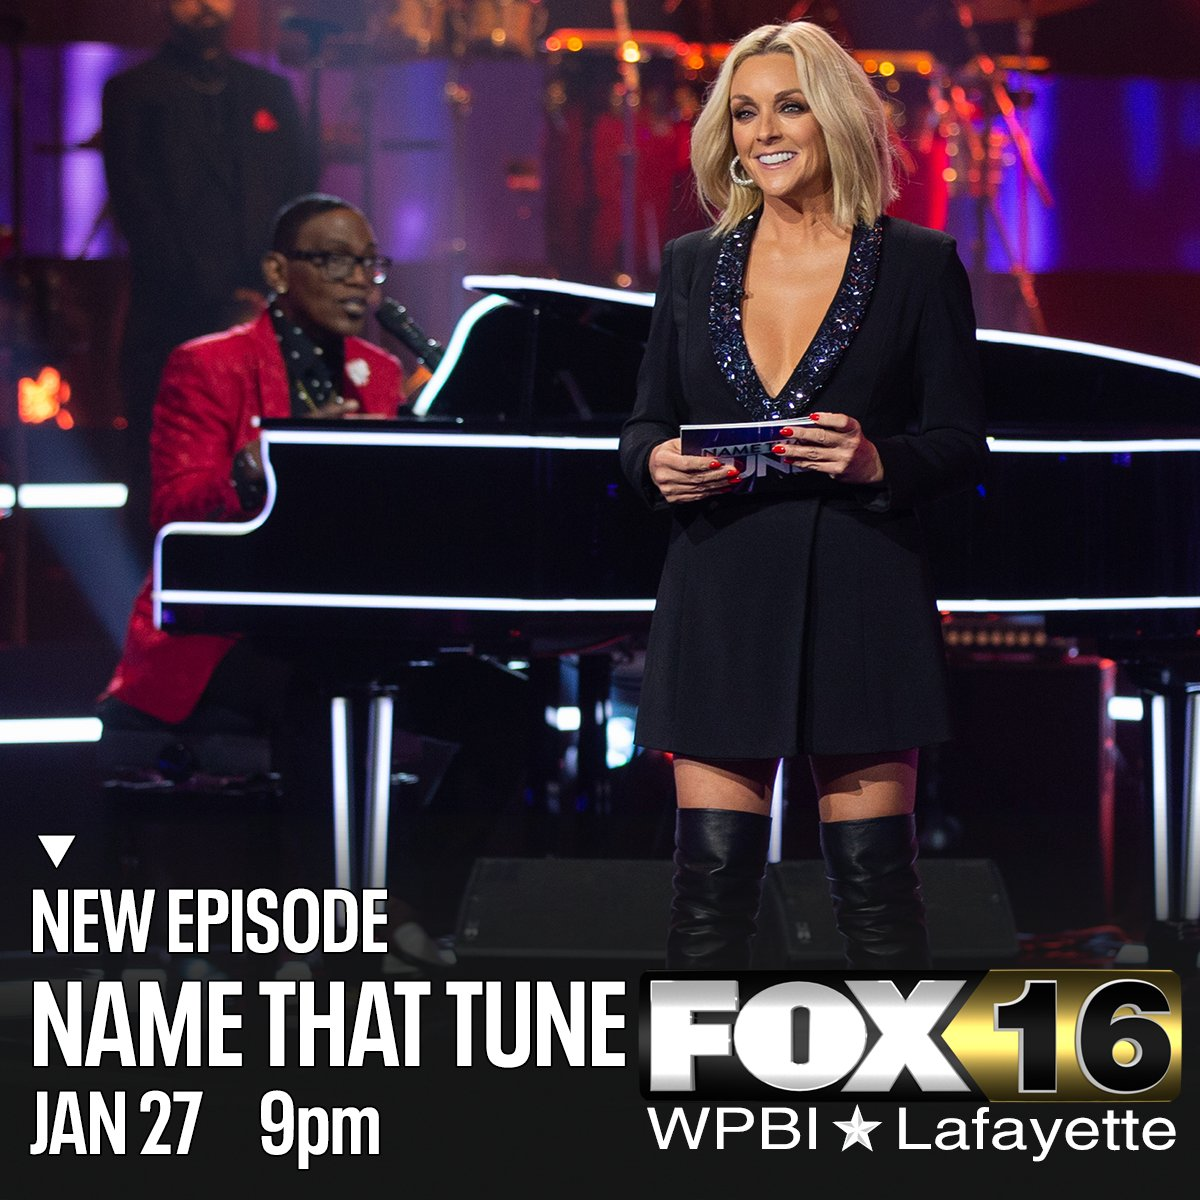 Make a note to catch Bid-A-Note on a new episode of #NameThatTune with #RandyJackson and #JaneKrakowski -- tonight at 9 on WPBI FOX16.